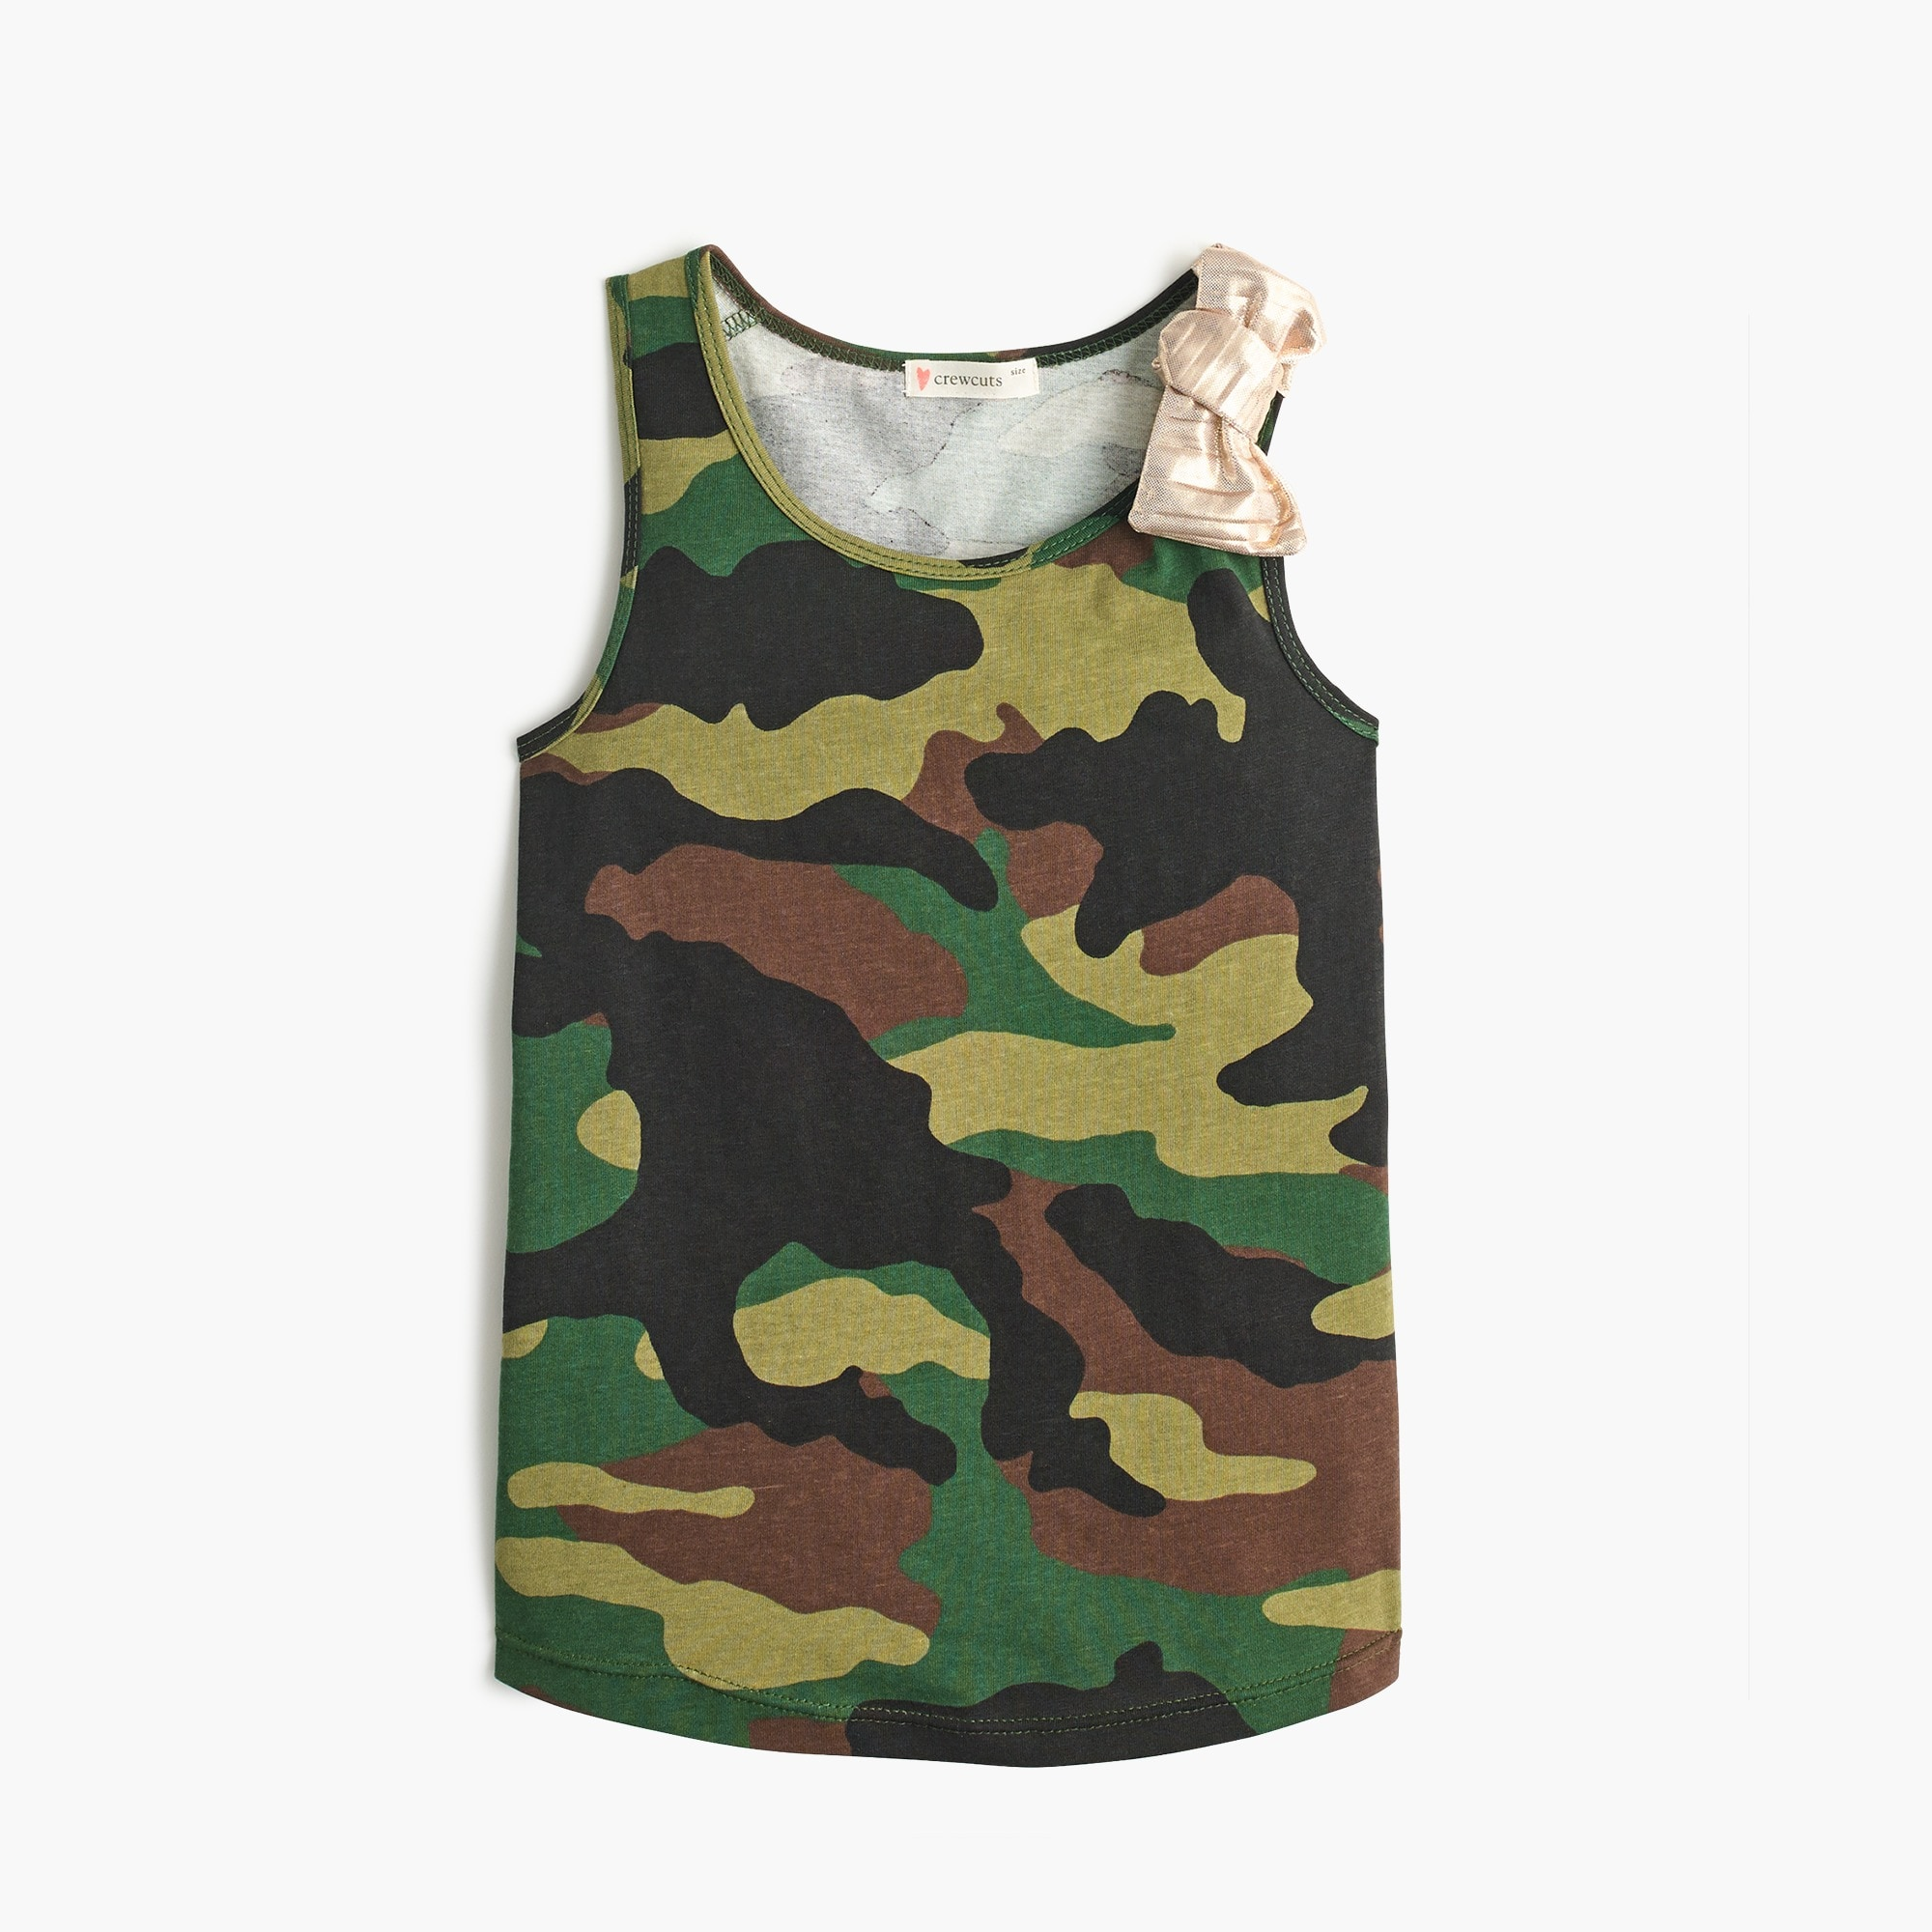 Girls' camo tank top with bow girl new arrivals c